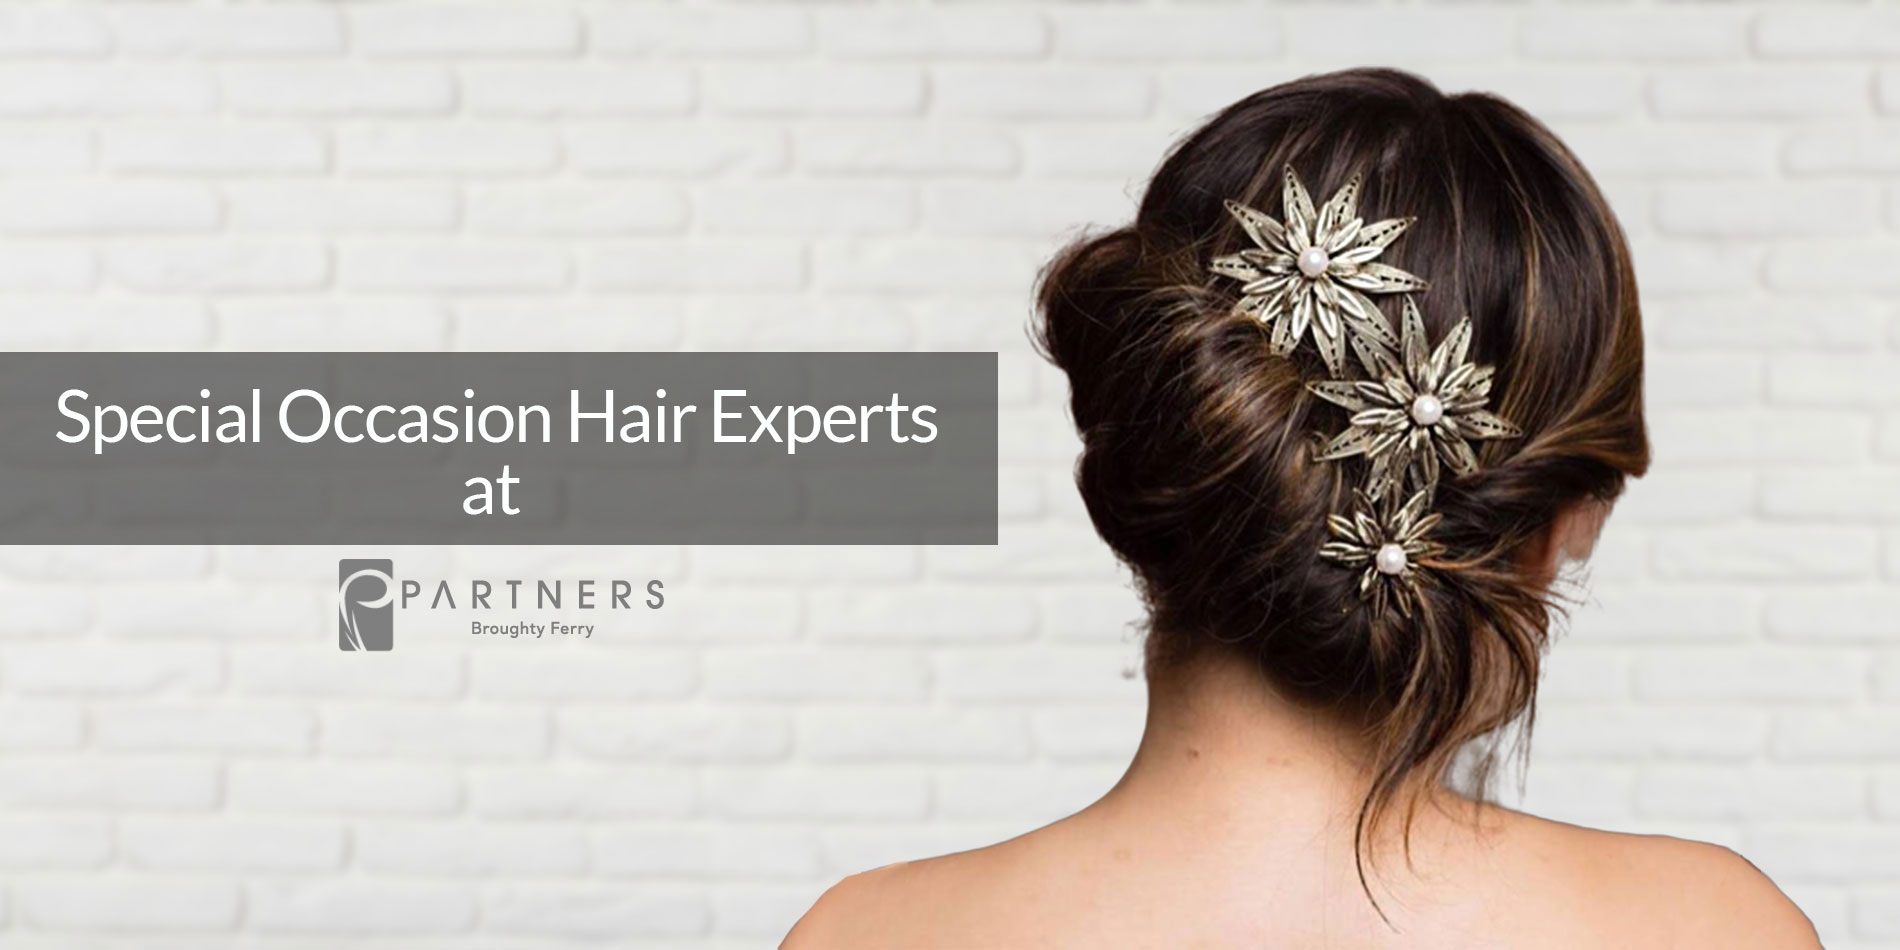 Special Occasion Hair Experts at partners